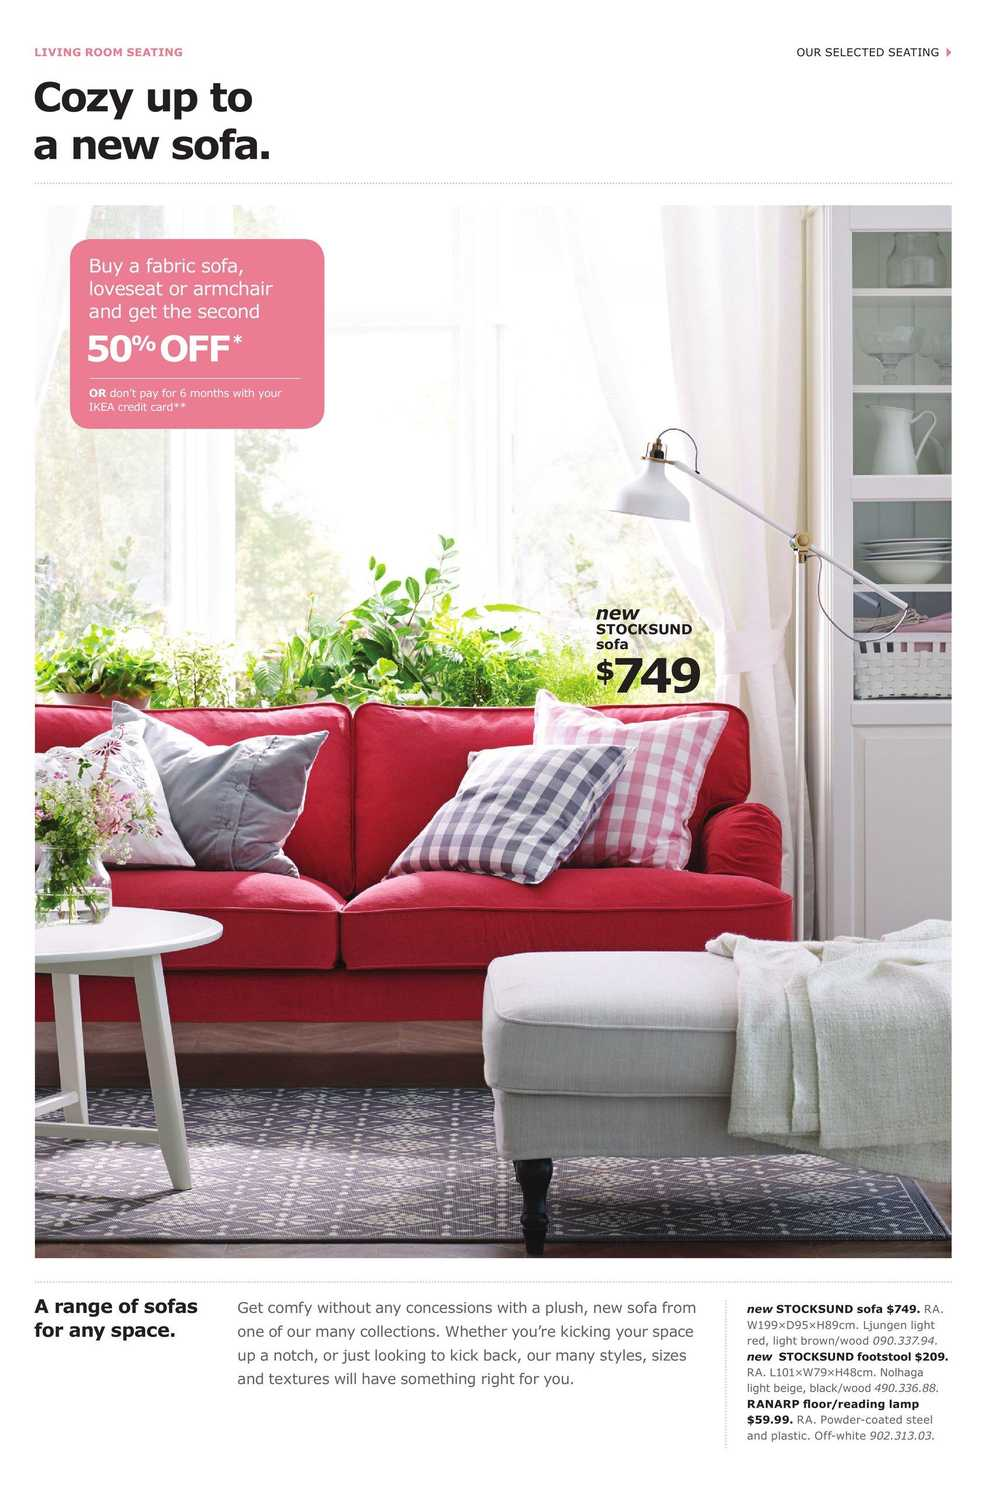 sofa bed chaise lounge ikea 2 seater leather glasgow sofas canada sectional talentneeds - thesofa